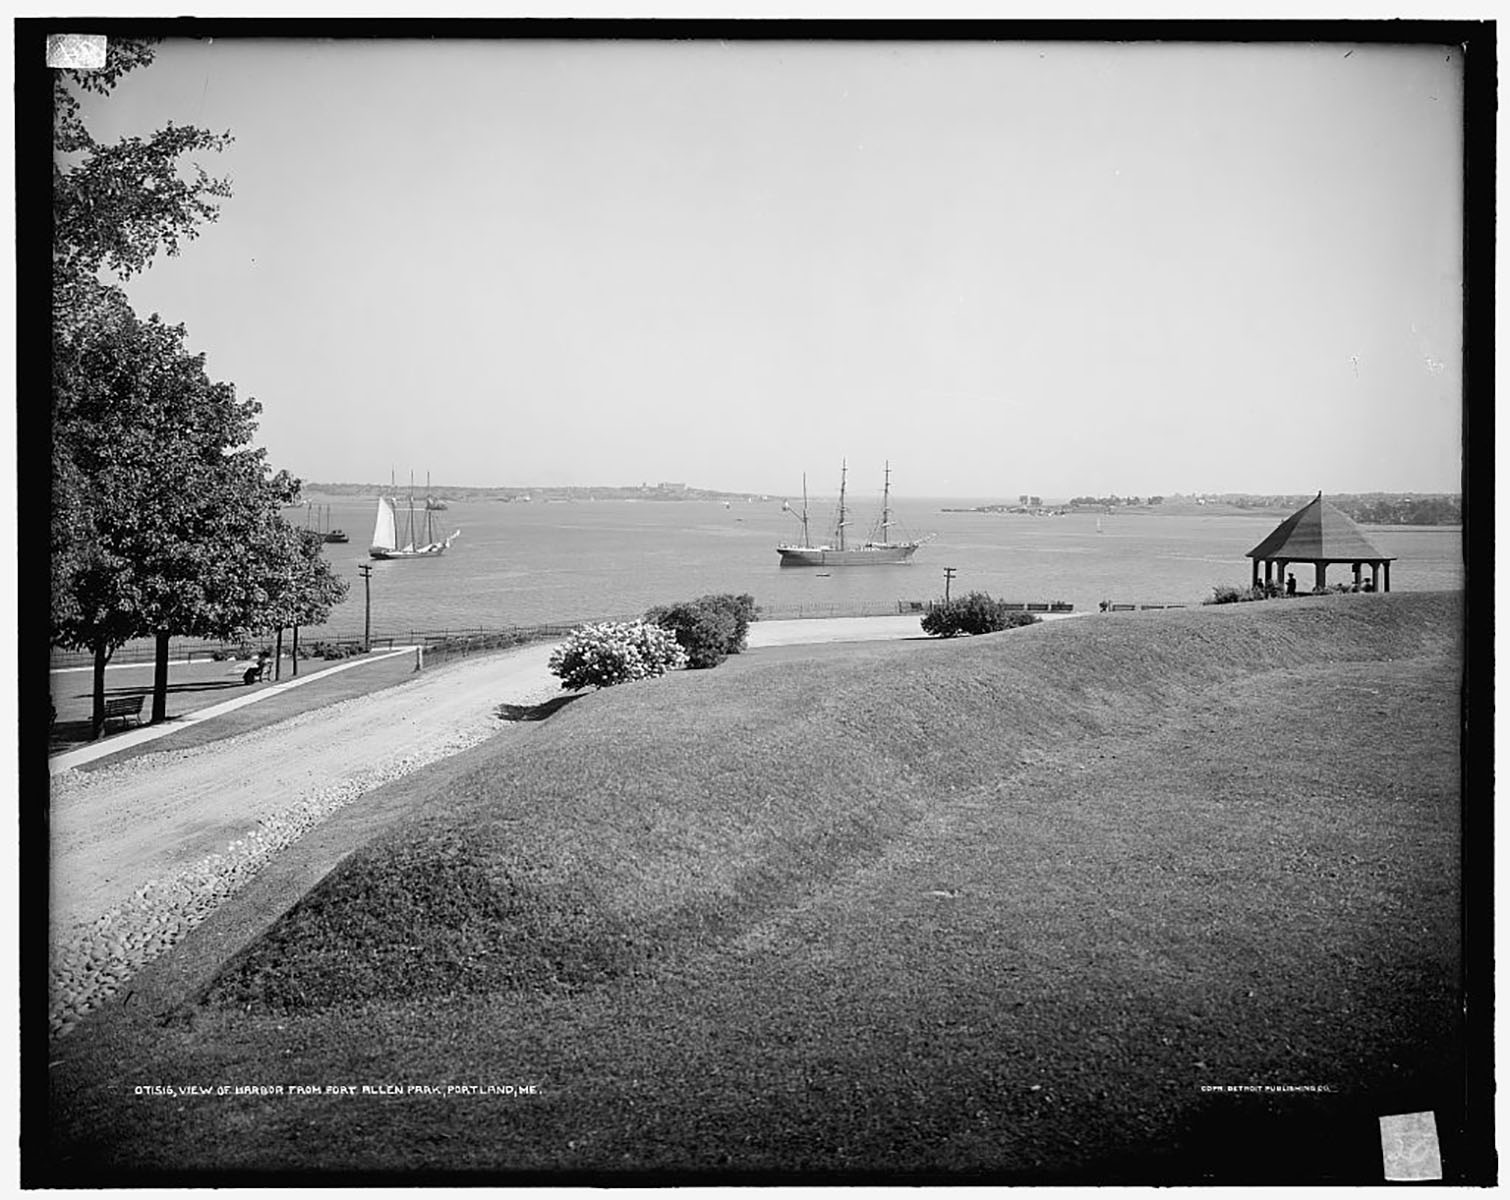 Detroit fap view of portland harbor 1900 1910